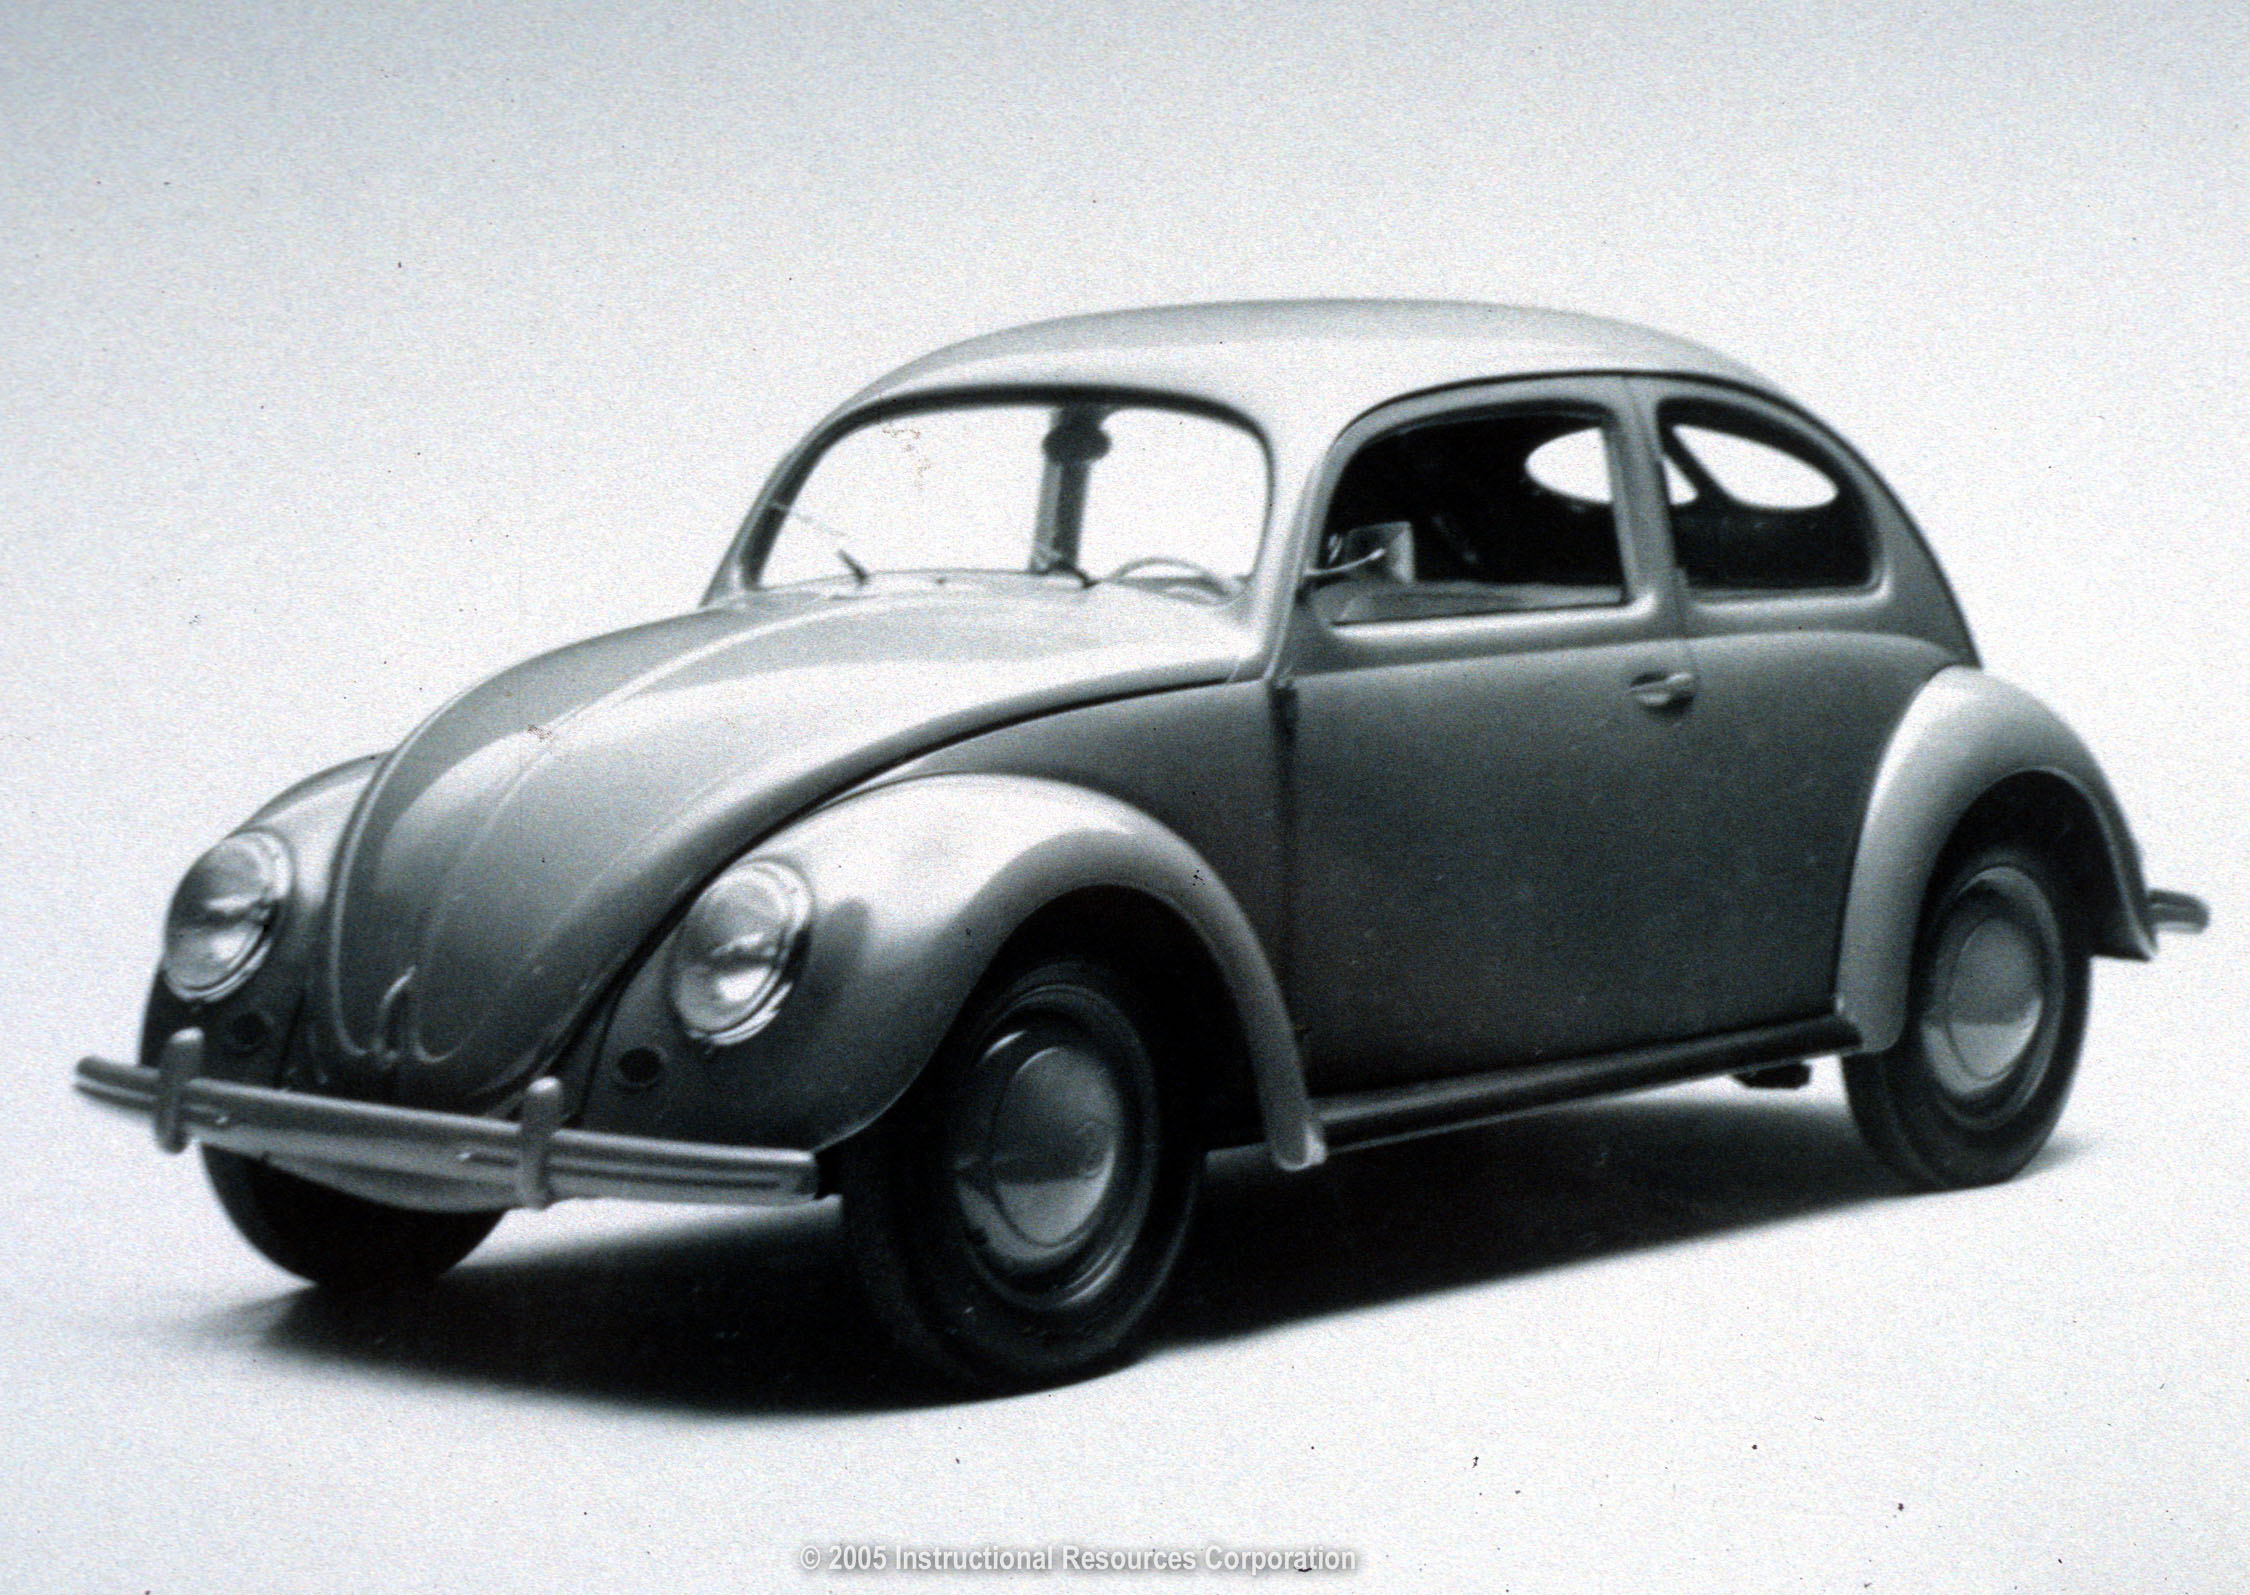 volkswagen bug photos news reviews specs car listings. Black Bedroom Furniture Sets. Home Design Ideas